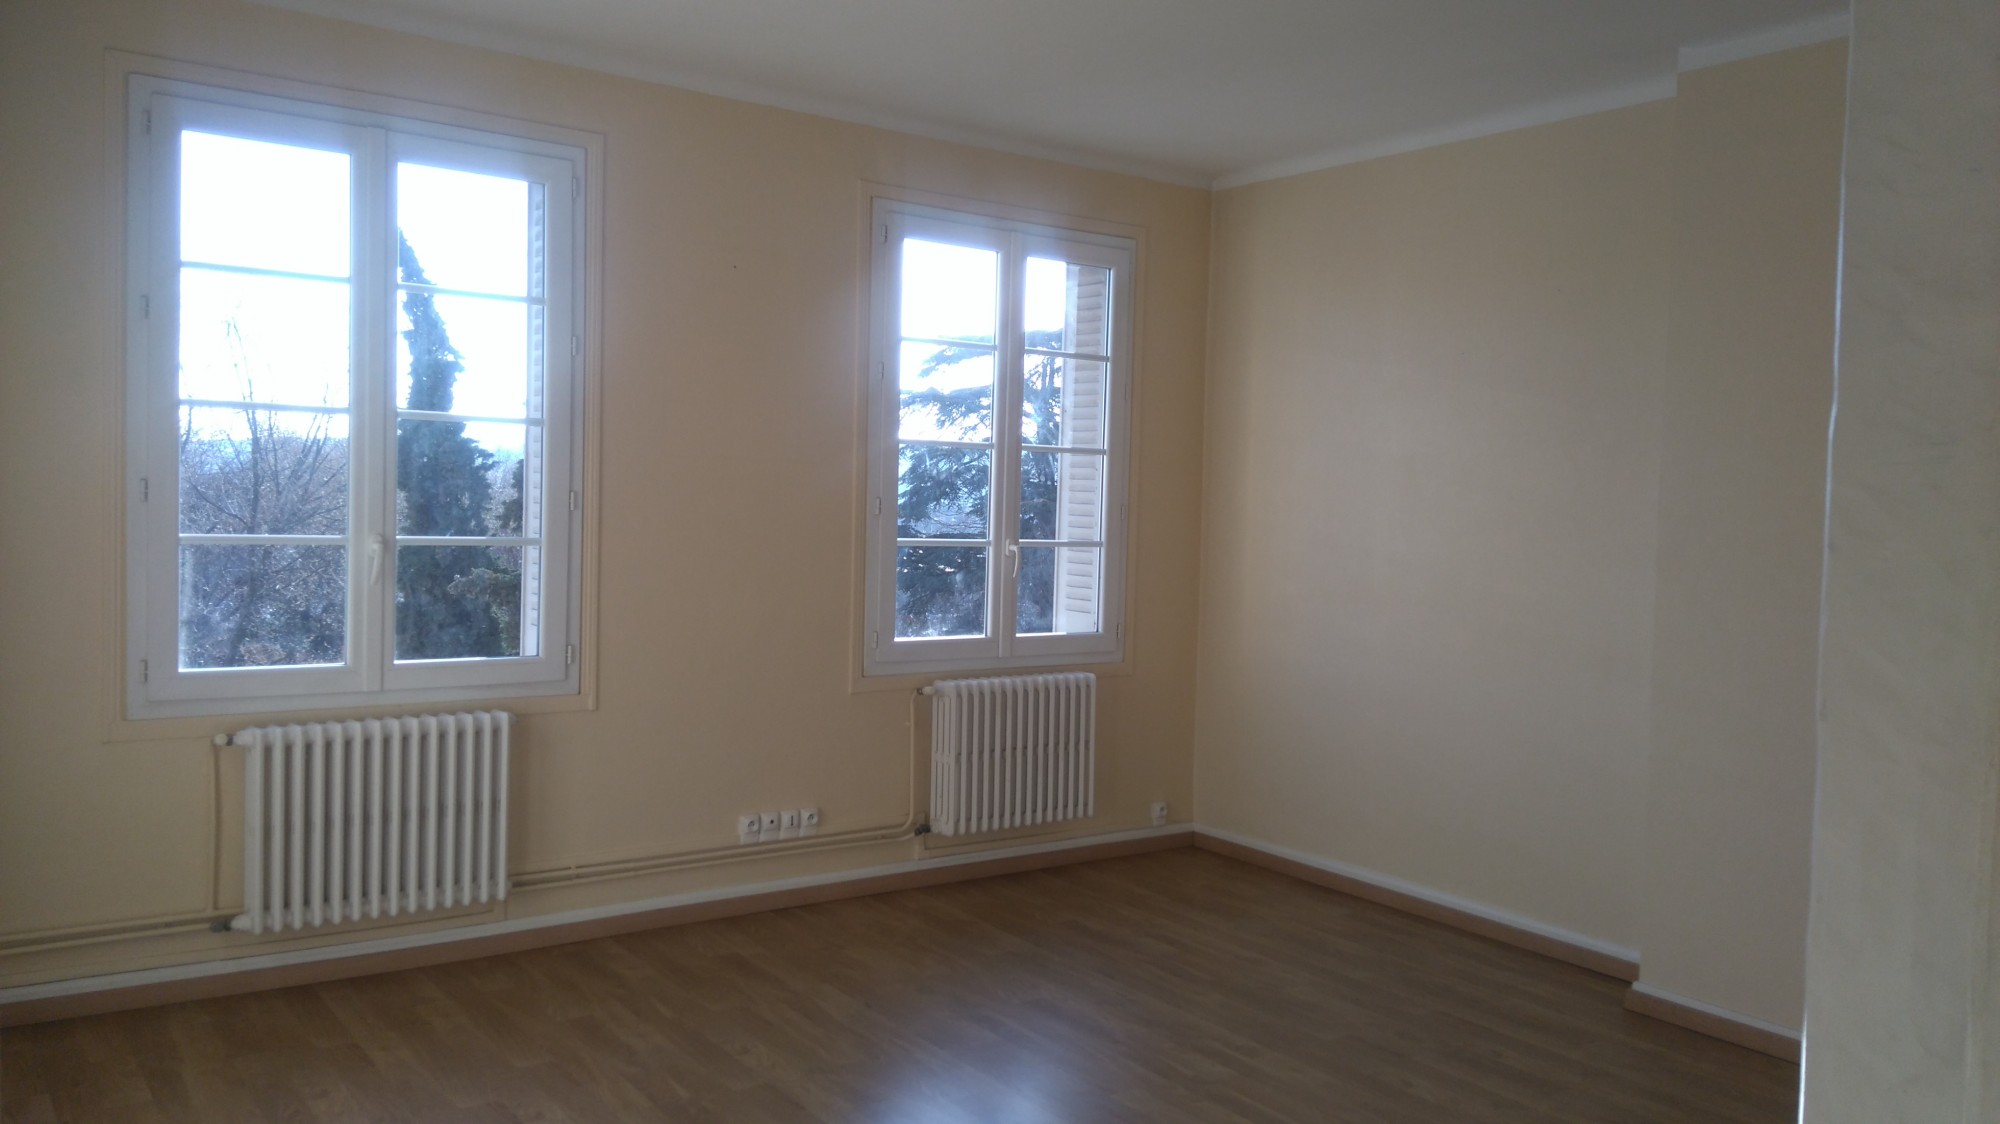 Location valence hyper centre appartement 3 chambres avec for Location appartement sans agence immobiliere